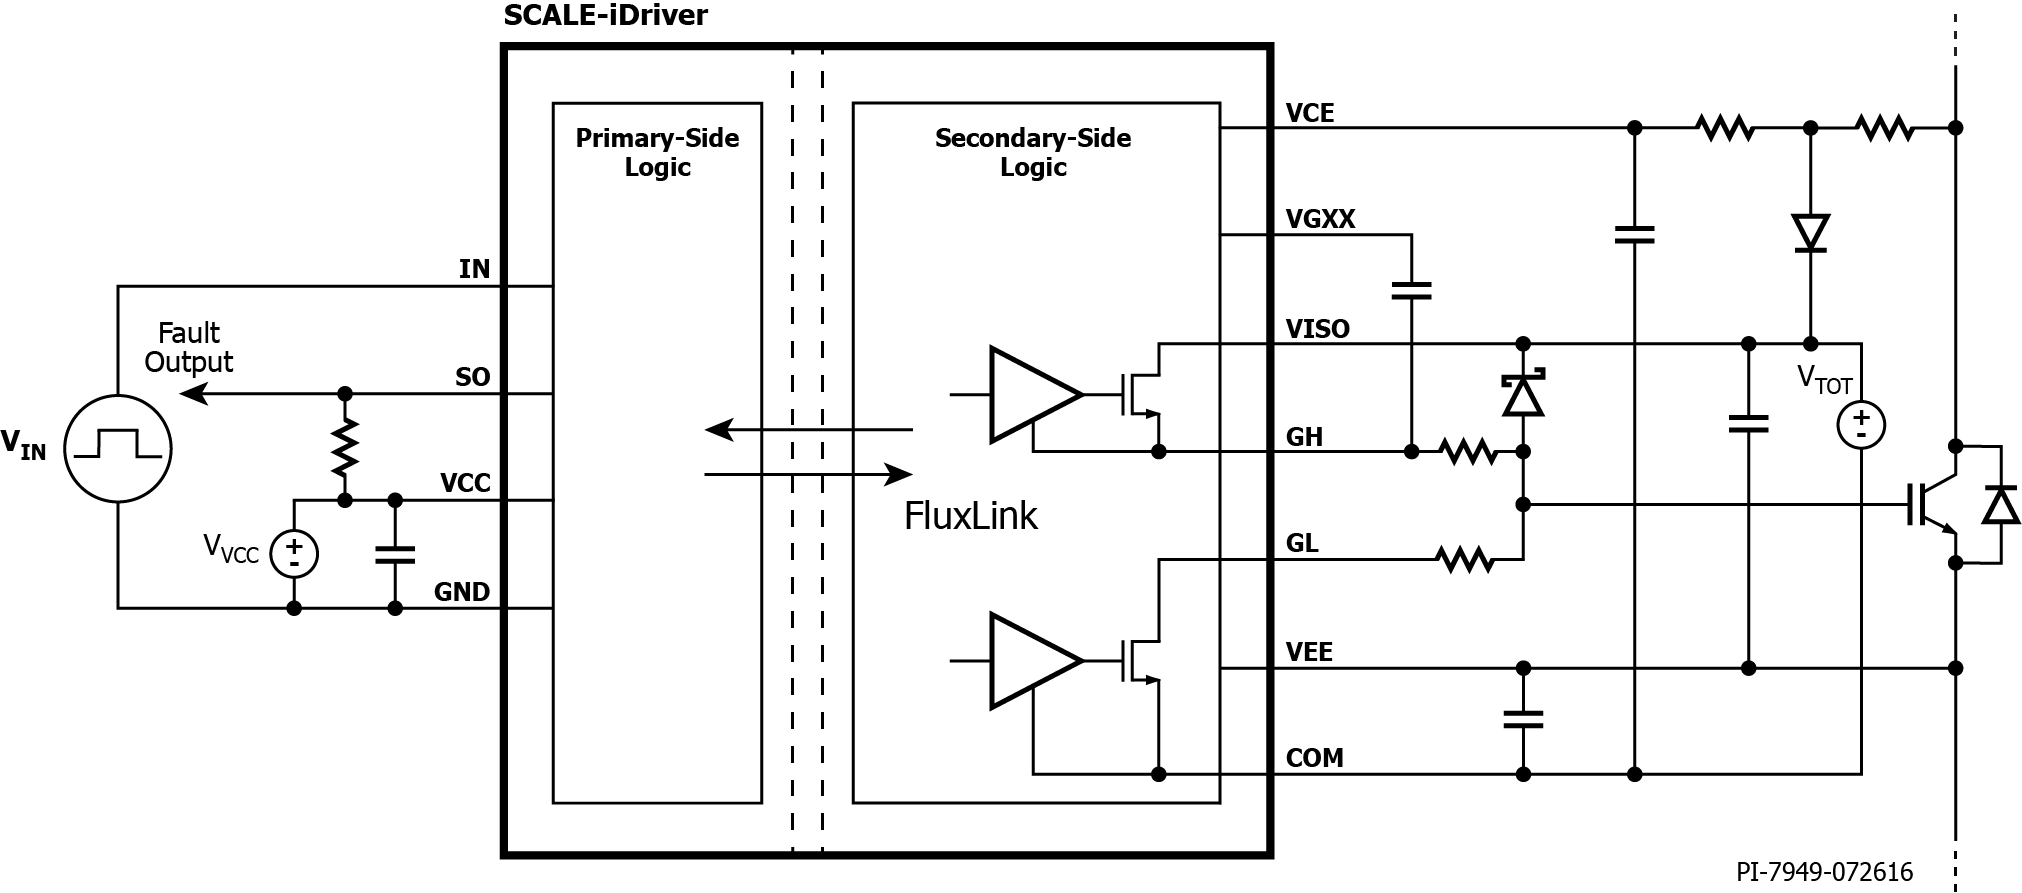 https://igbt-driver.power.com/sites/default/files/images/schematics/scale_idriver_schematic.png#